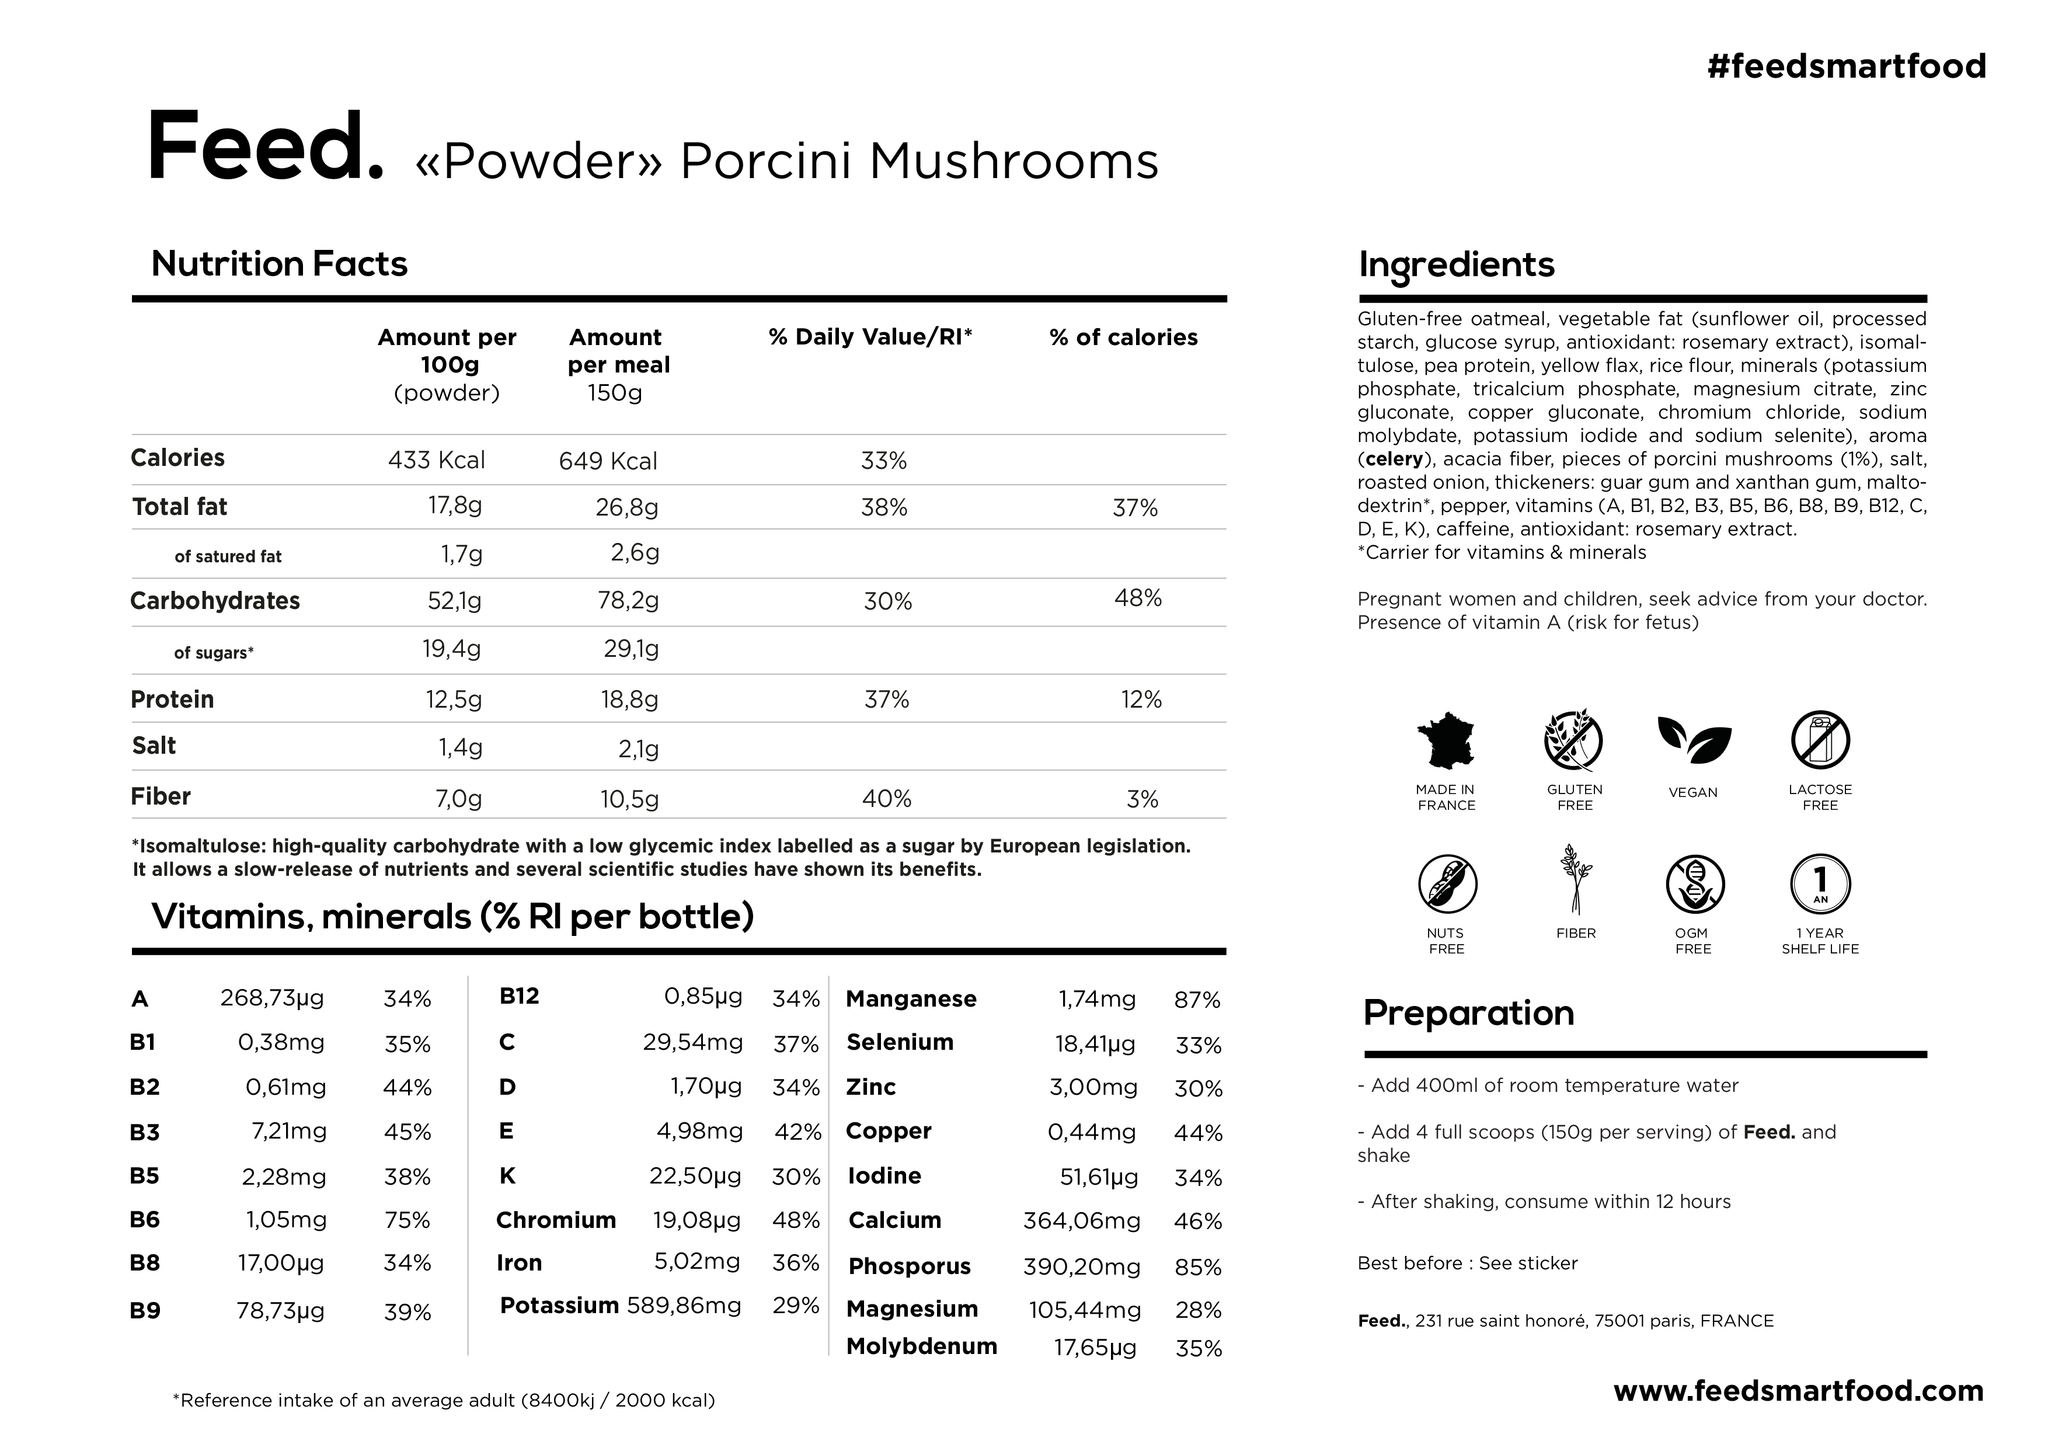 products/feed_tableau_nutritionnel_powder_porcini_mushrooms_en_6651d1cb-46b2-4226-9a5d-4acd6c4bff3e.png